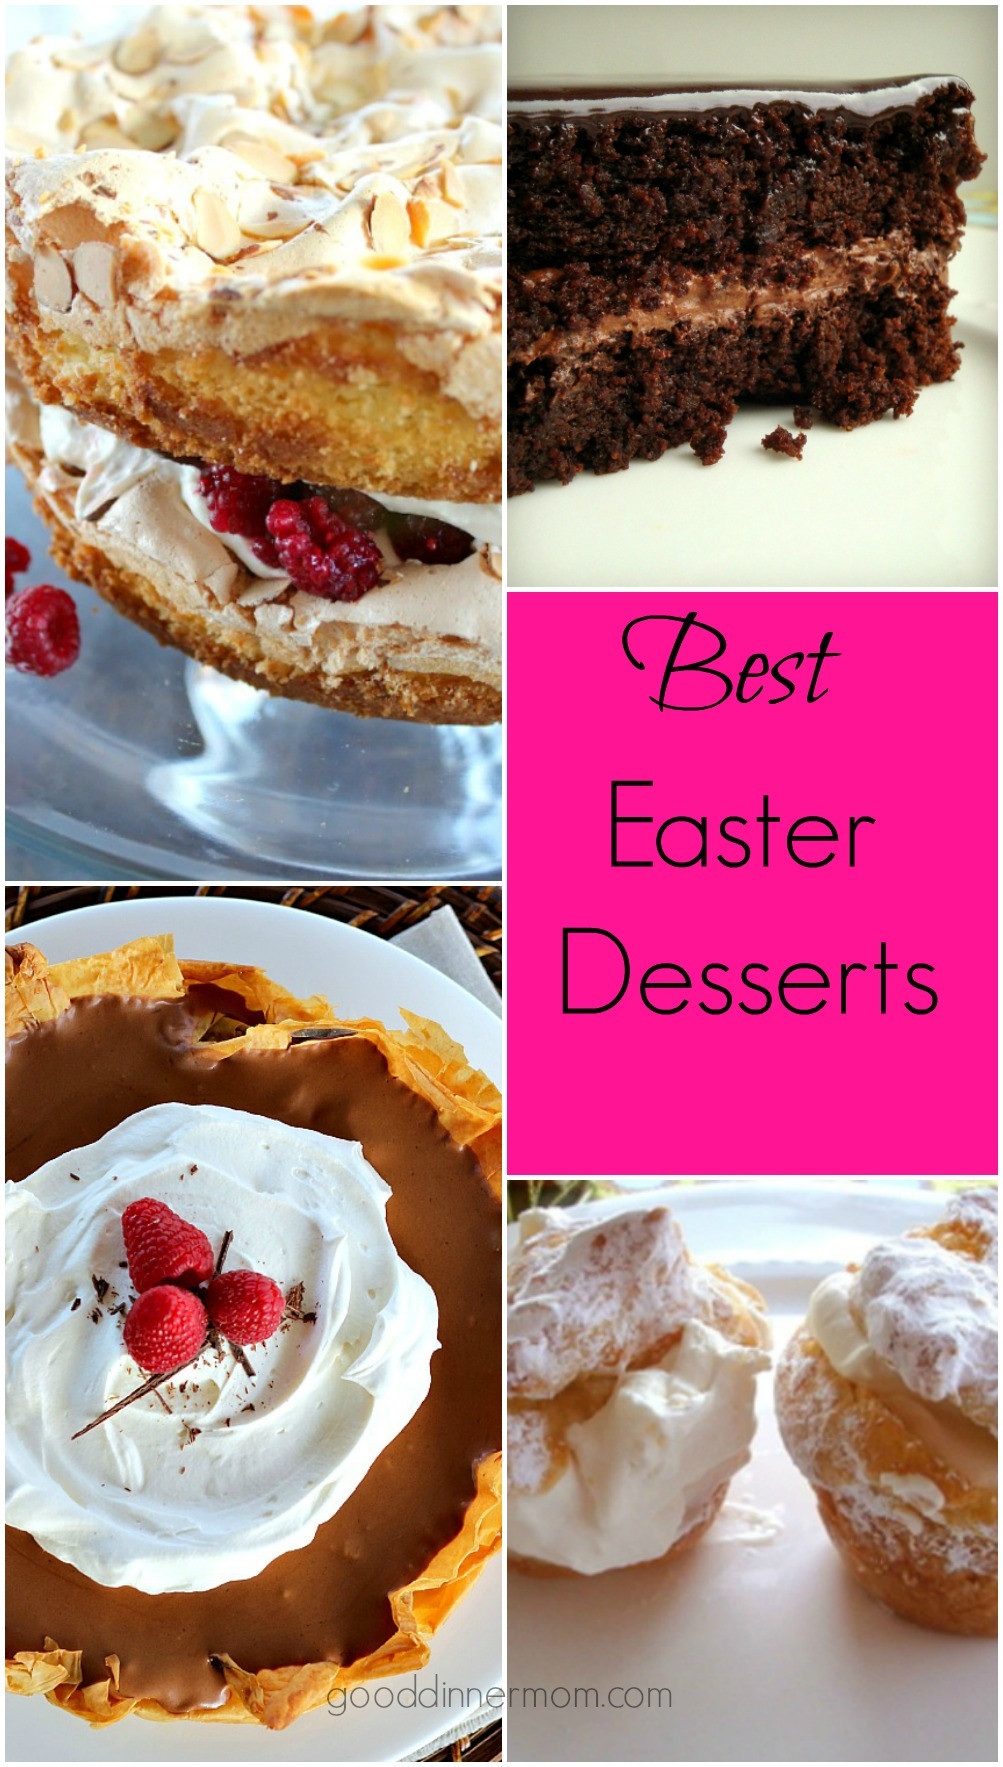 Good Easter Desserts  Easter Dessert Recipes Good Dinner Mom